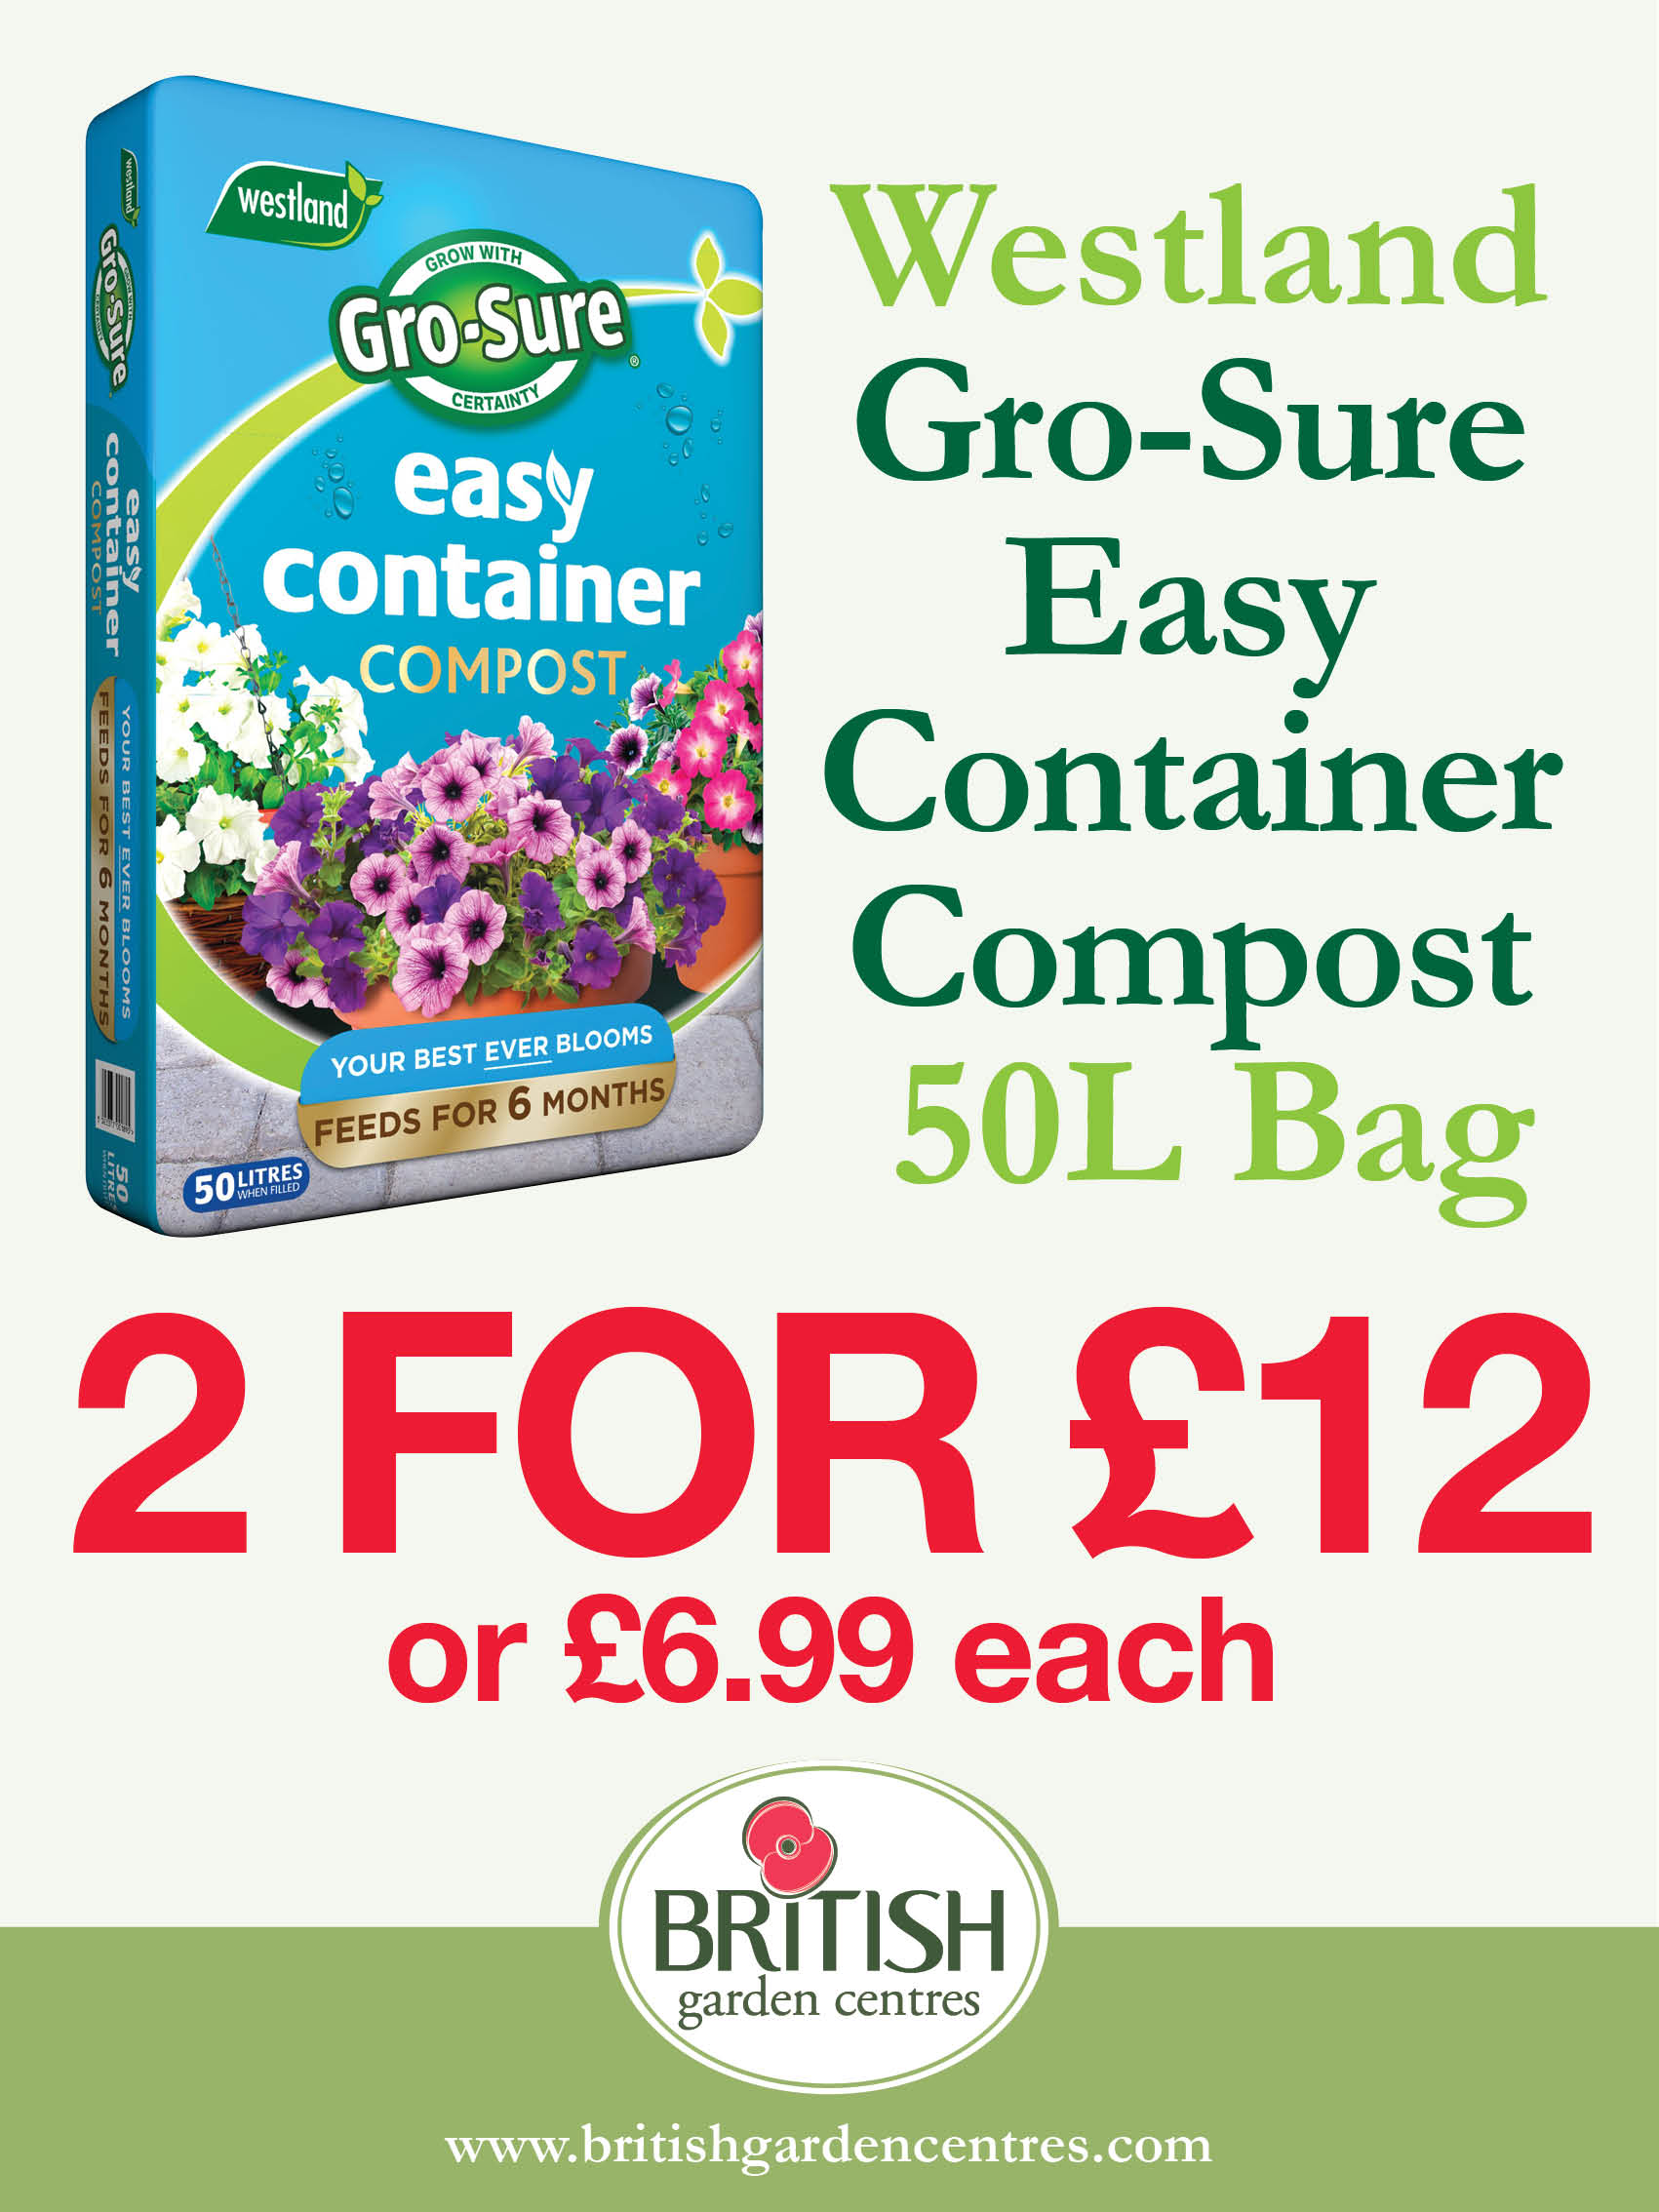 Gro-Sure Easy Container Compost 50L